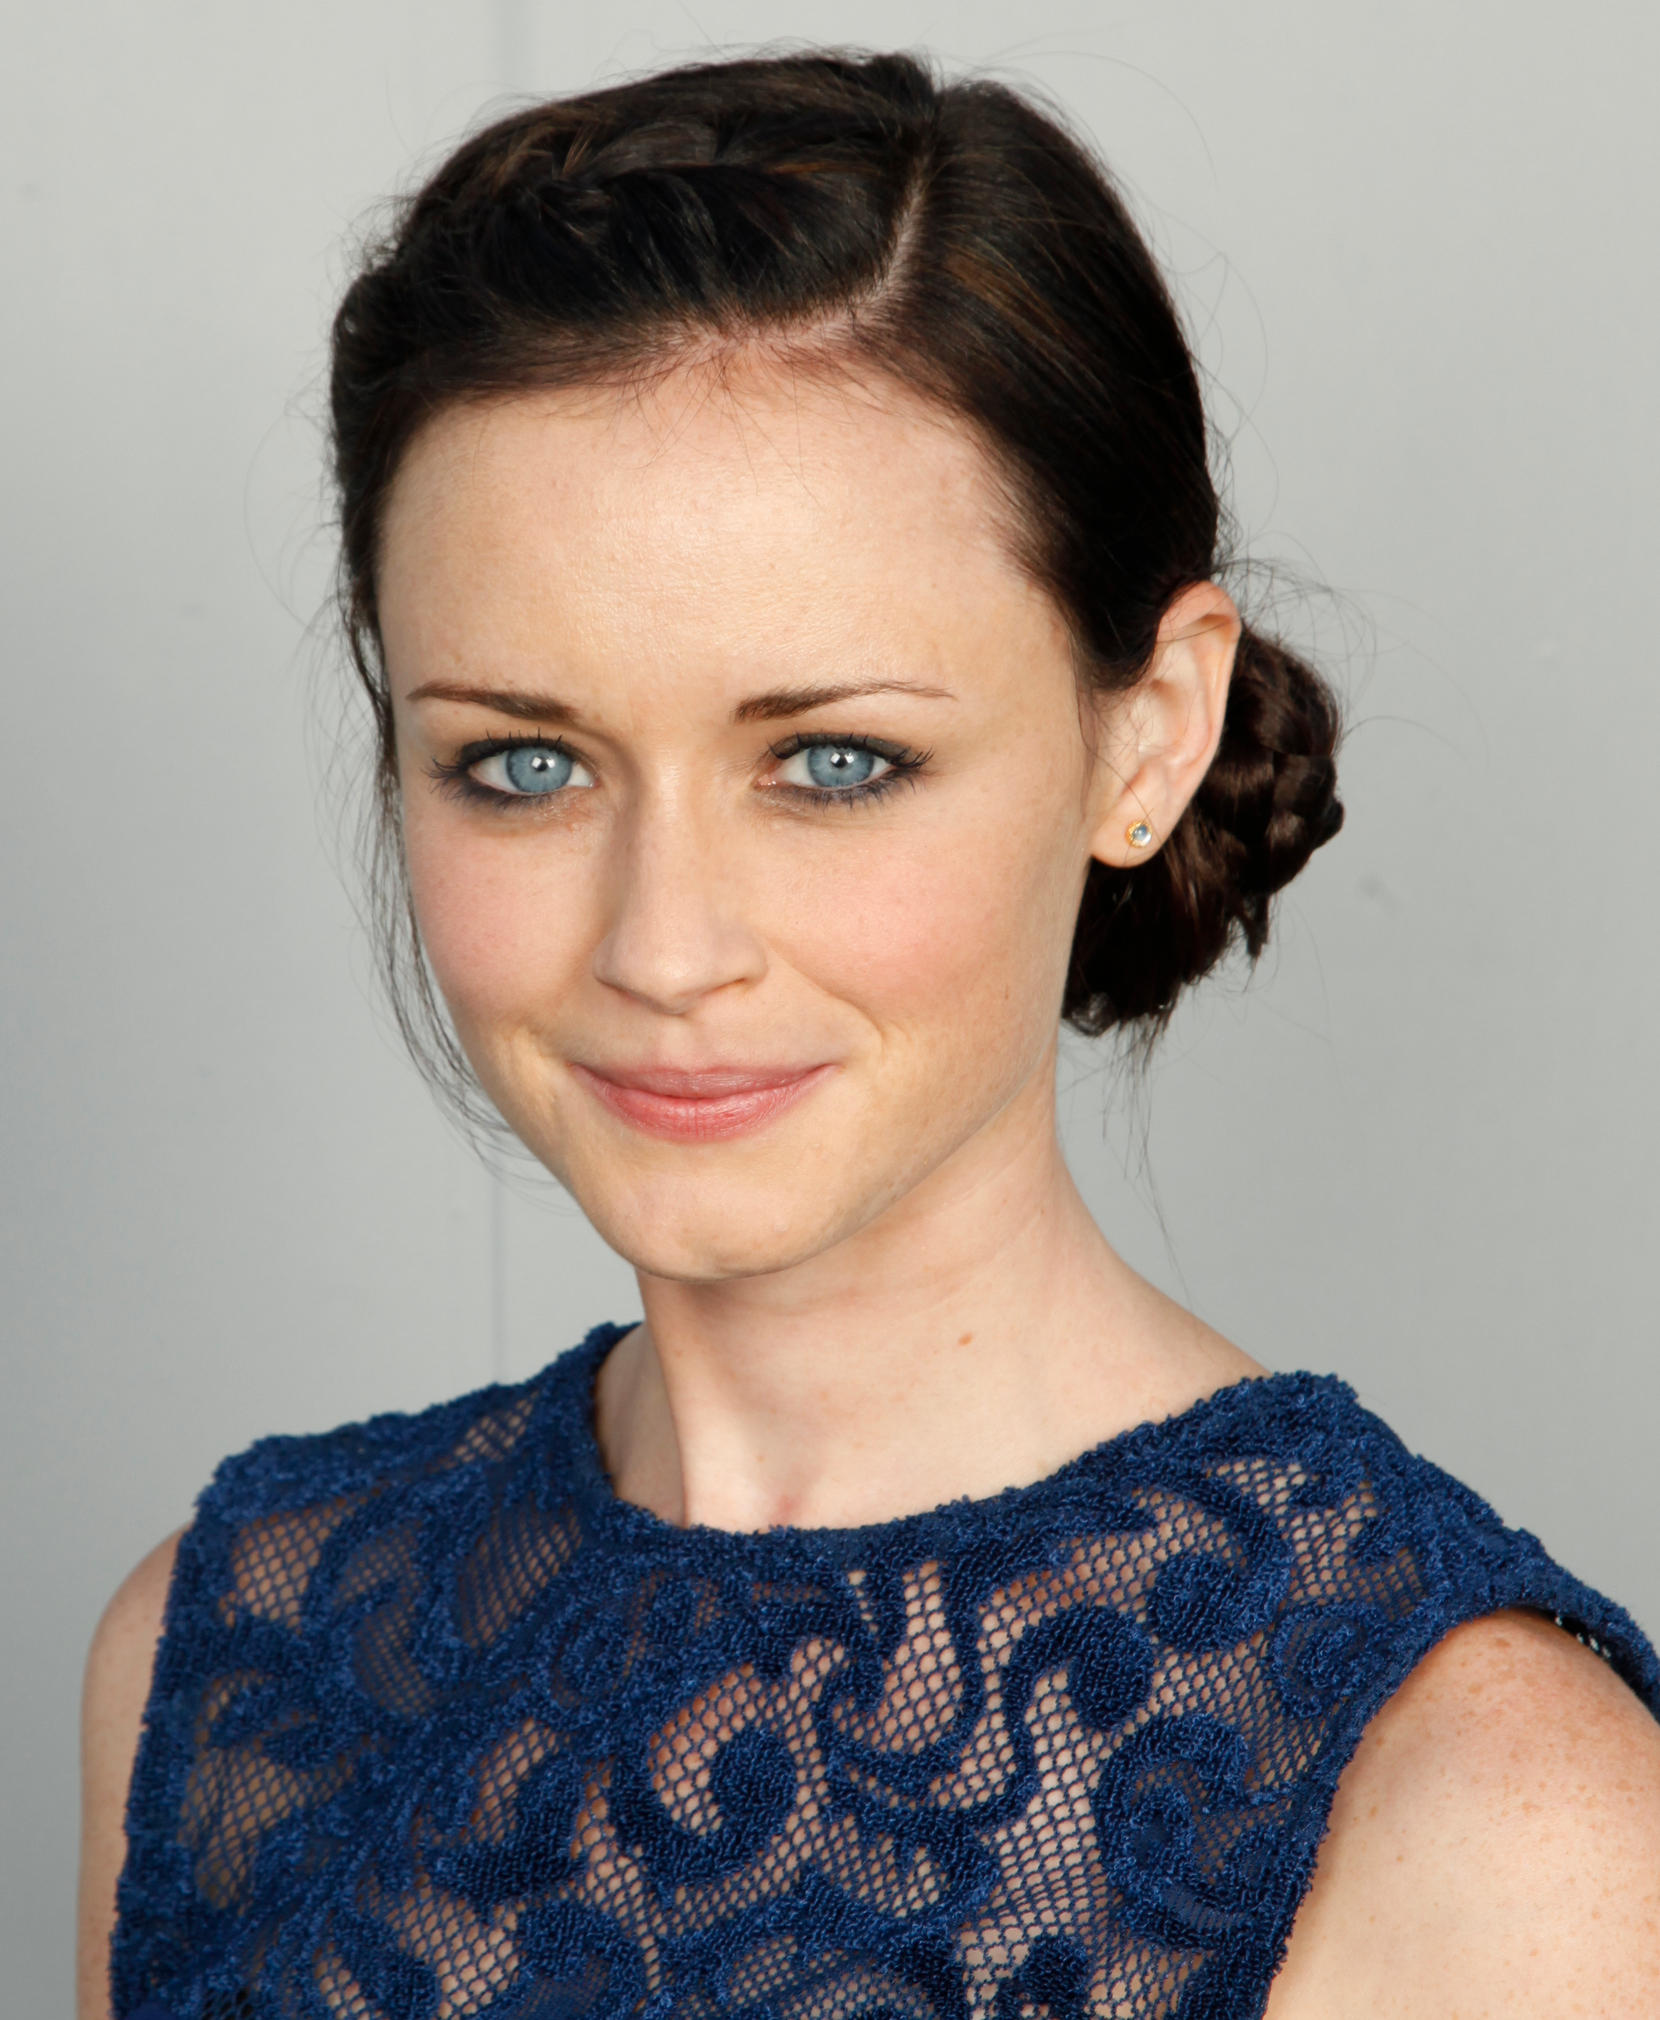 Photos Alexis Bledel nudes (12 photo), Tits, Leaked, Boobs, see through 2018